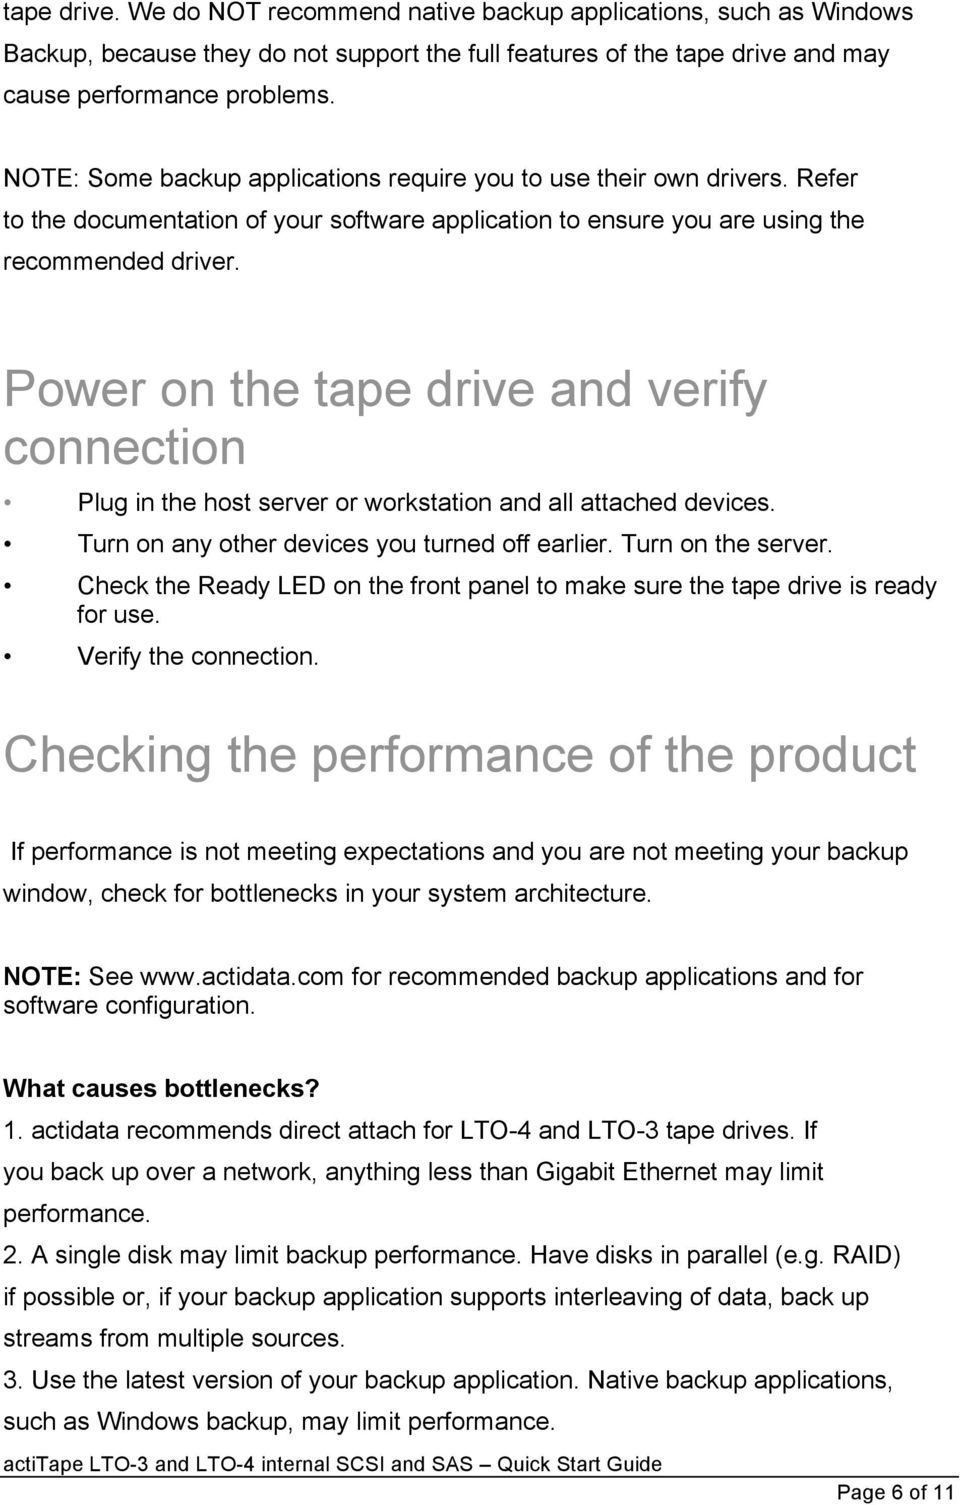 Power on the tape drive and verify connection Plug in the host server or workstation and all attached devices. Turn on any other devices you turned off earlier. Turn on the server.